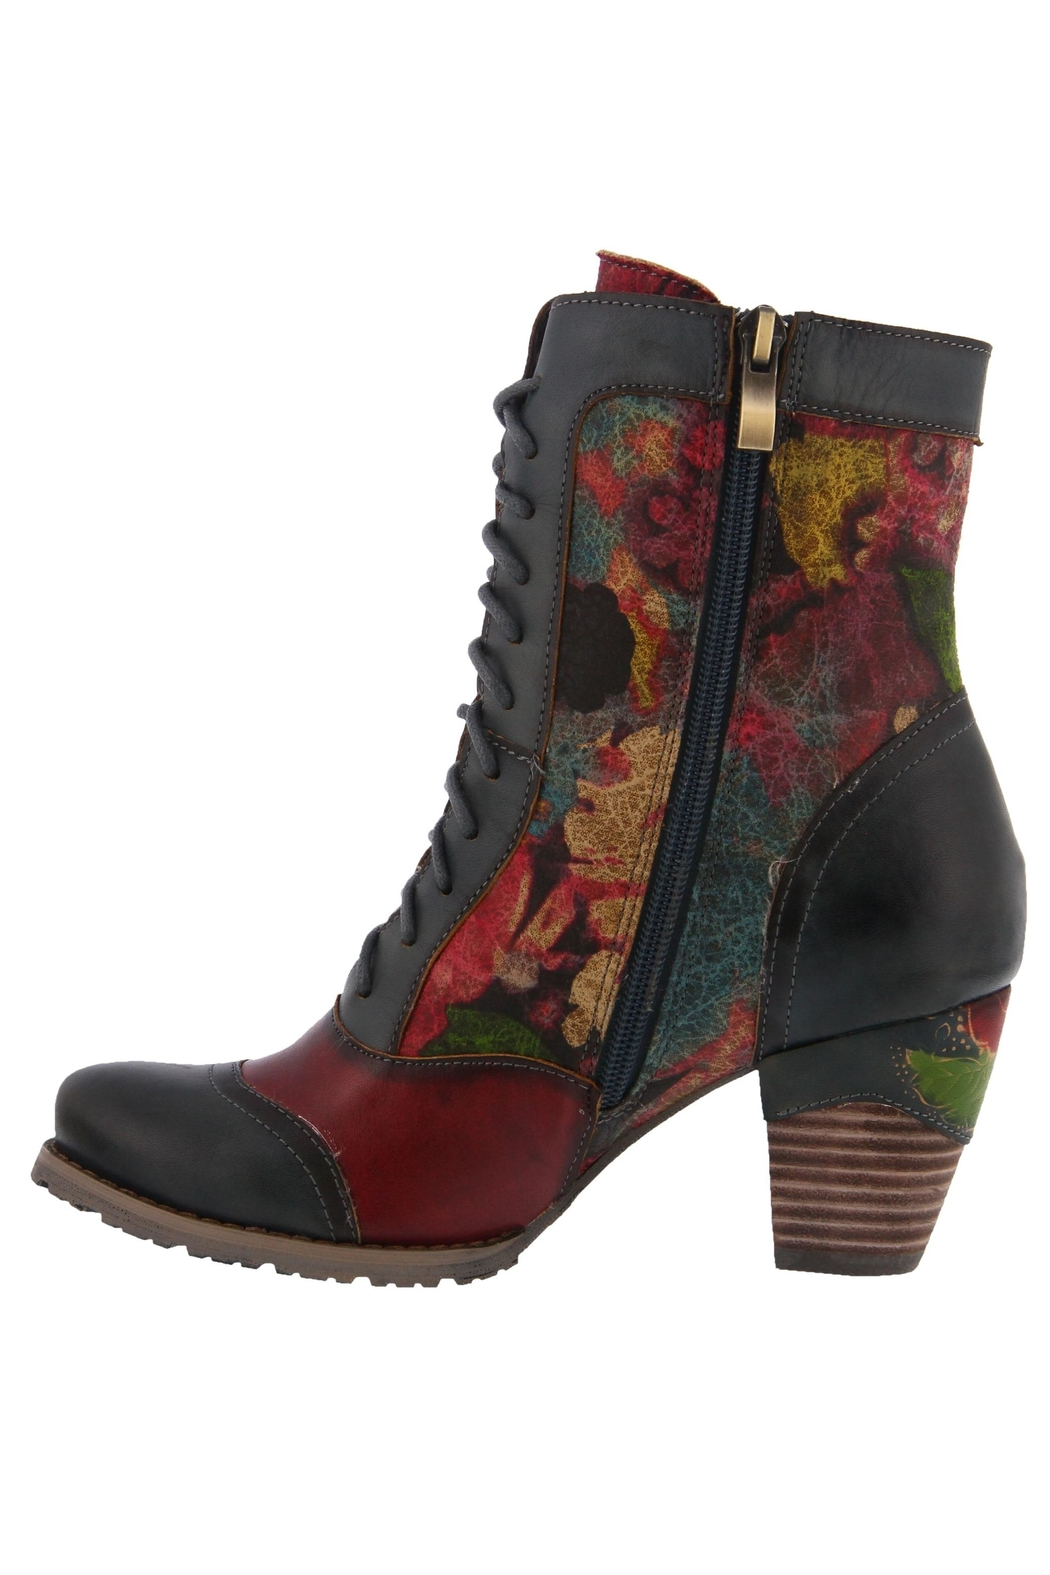 Spring Footwear Floral Lace-Up Bootie - Front Full Image